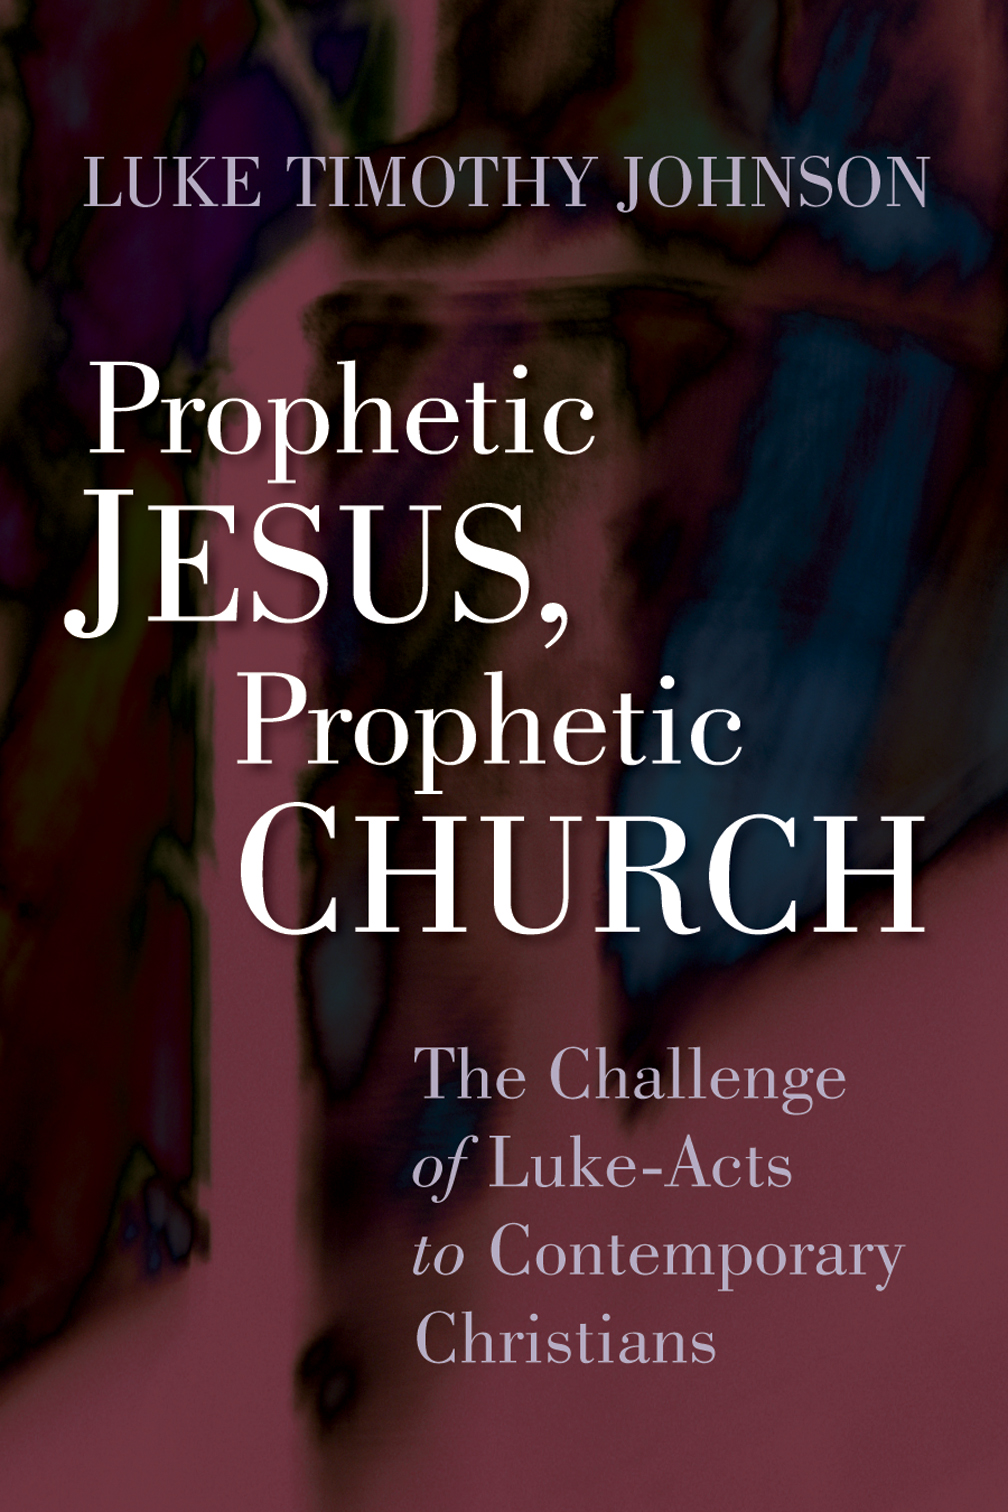 prohetic jesus prophetic church